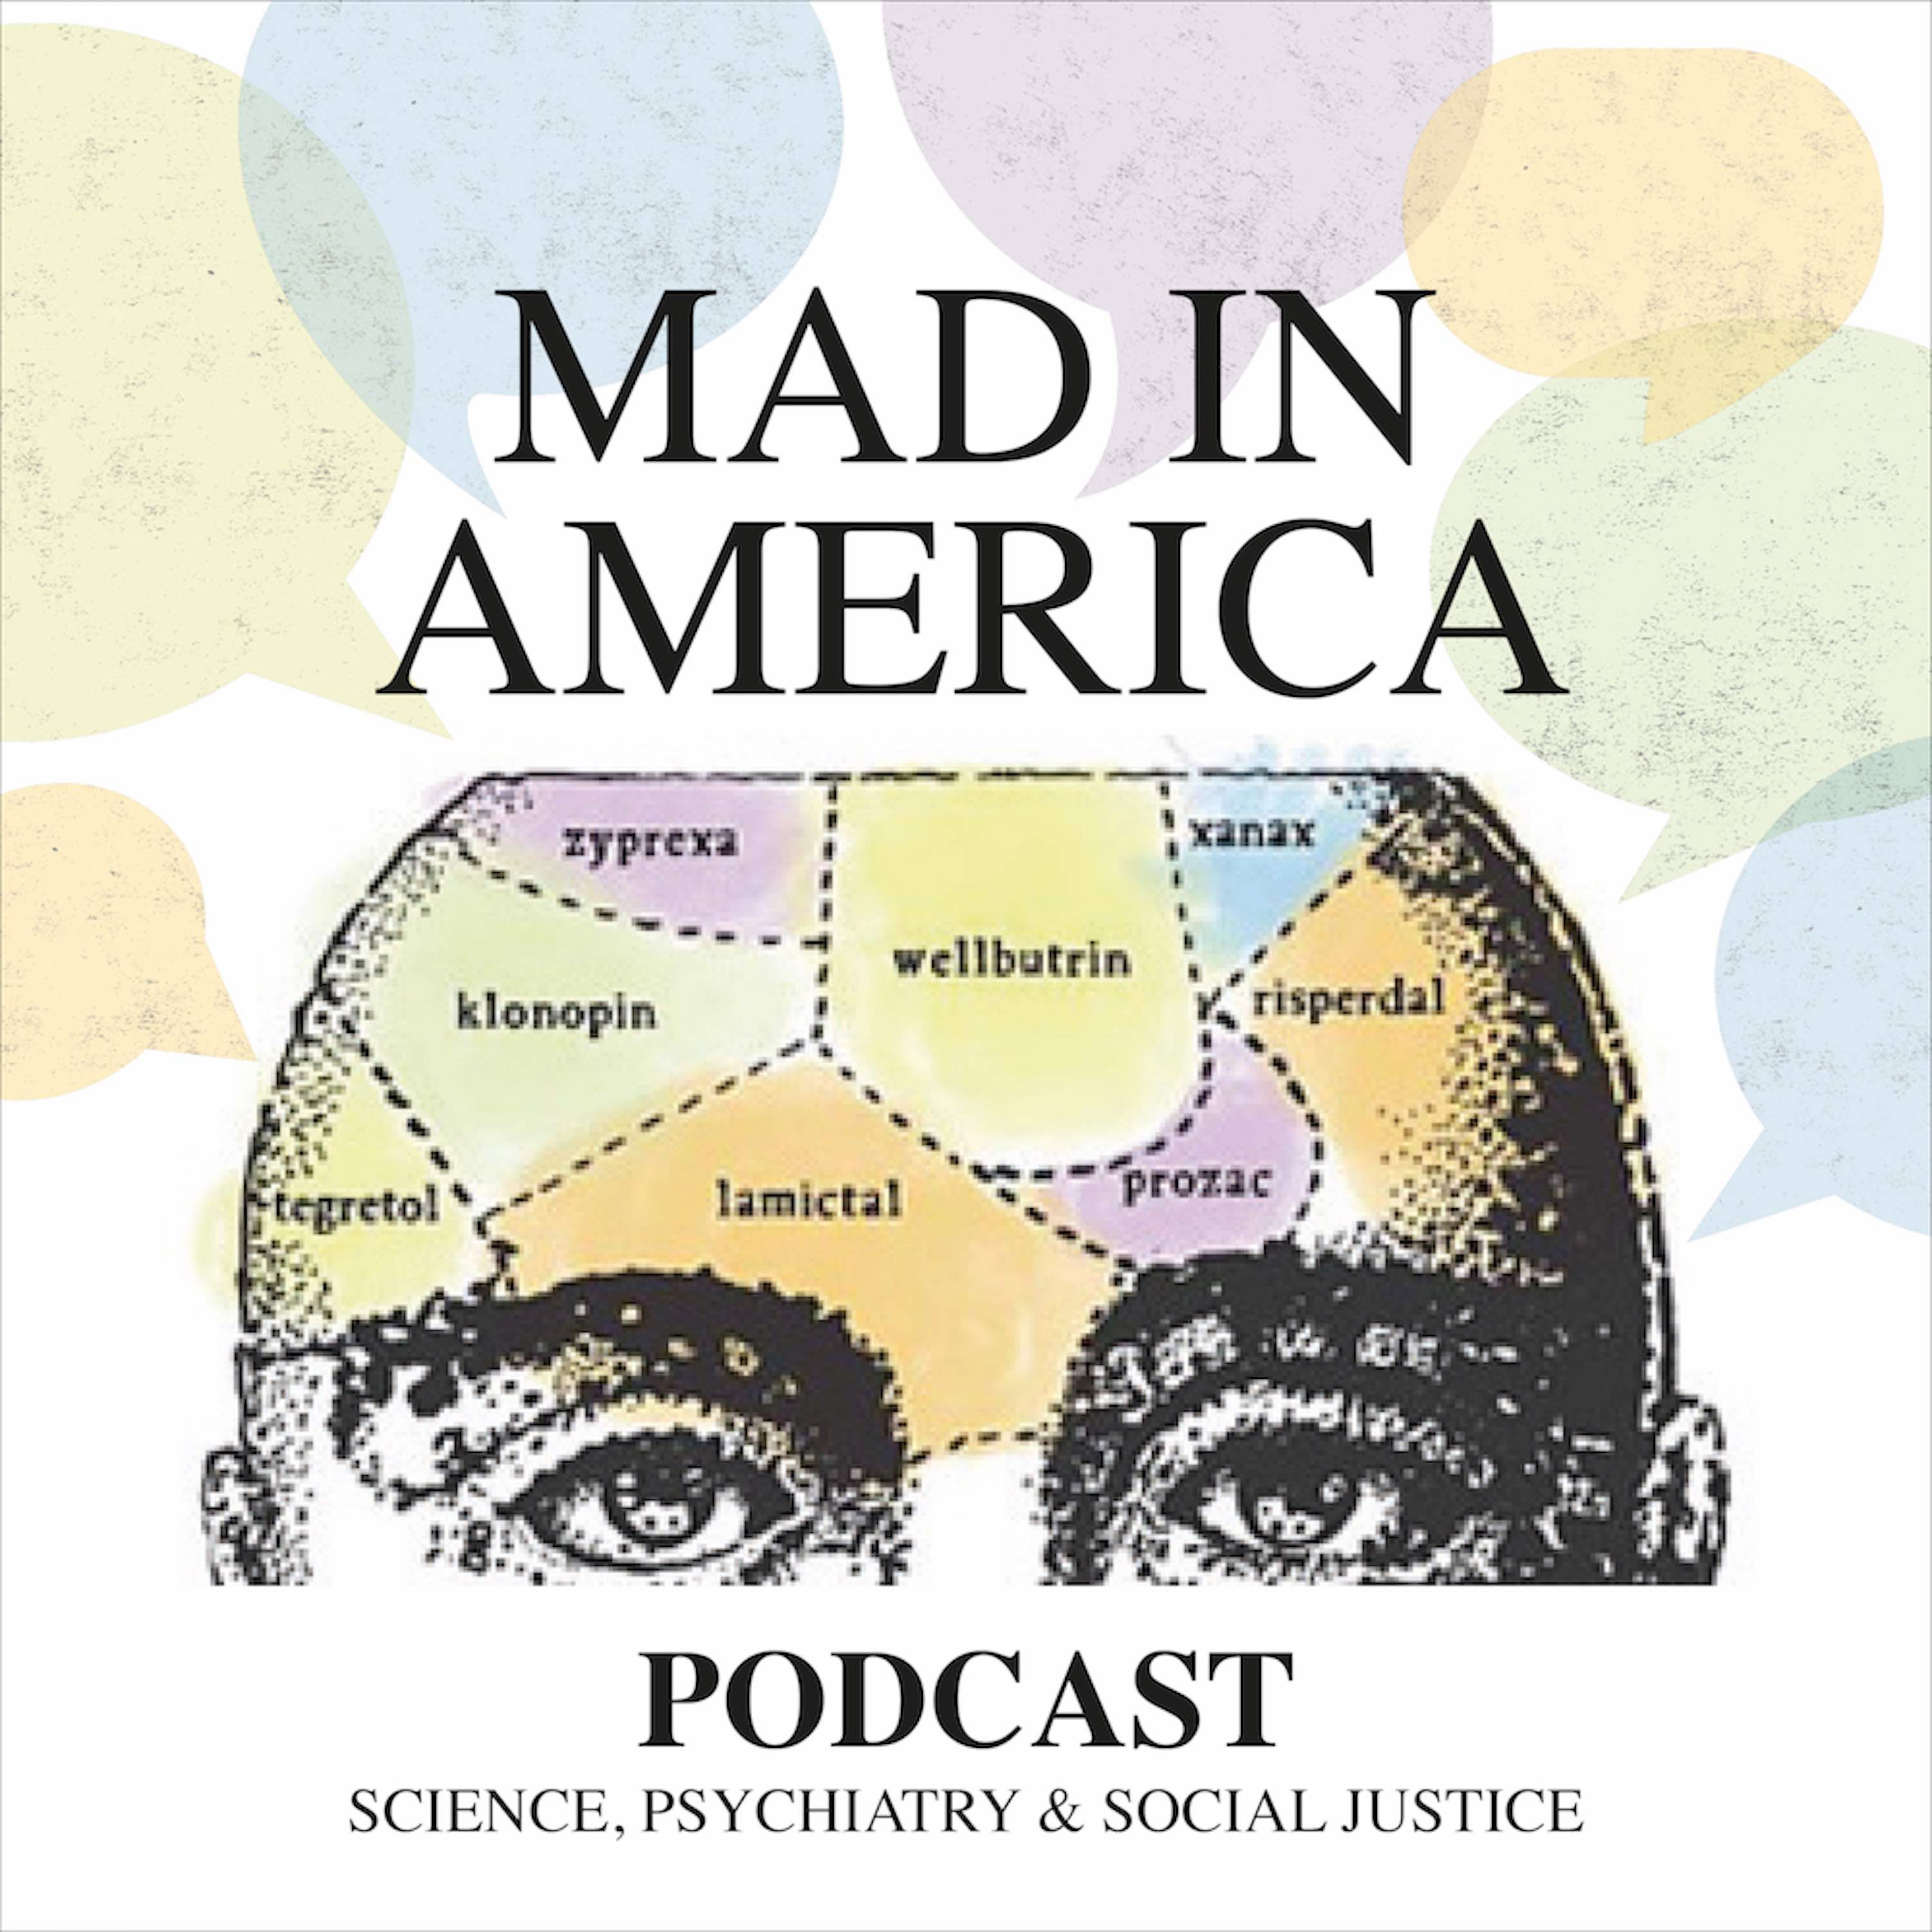 Mad in America: Rethinking Mental Health - David Healy - Seeking a Cure for Protracted, Medication-related Sexual Dysfunction